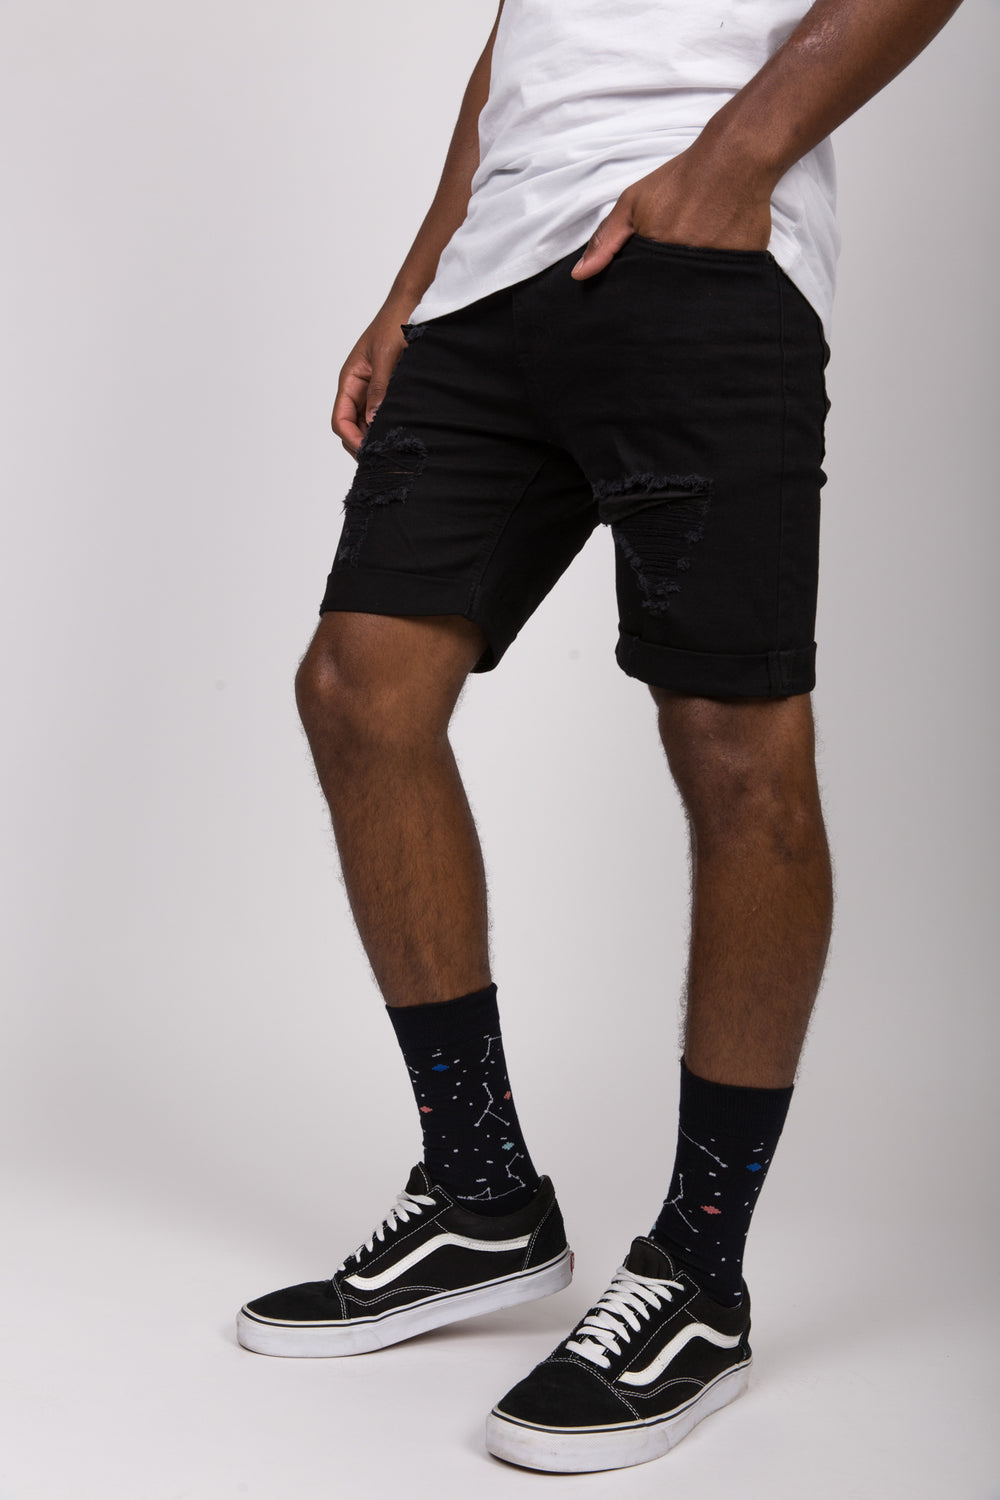 Nth Twilight Sock Black